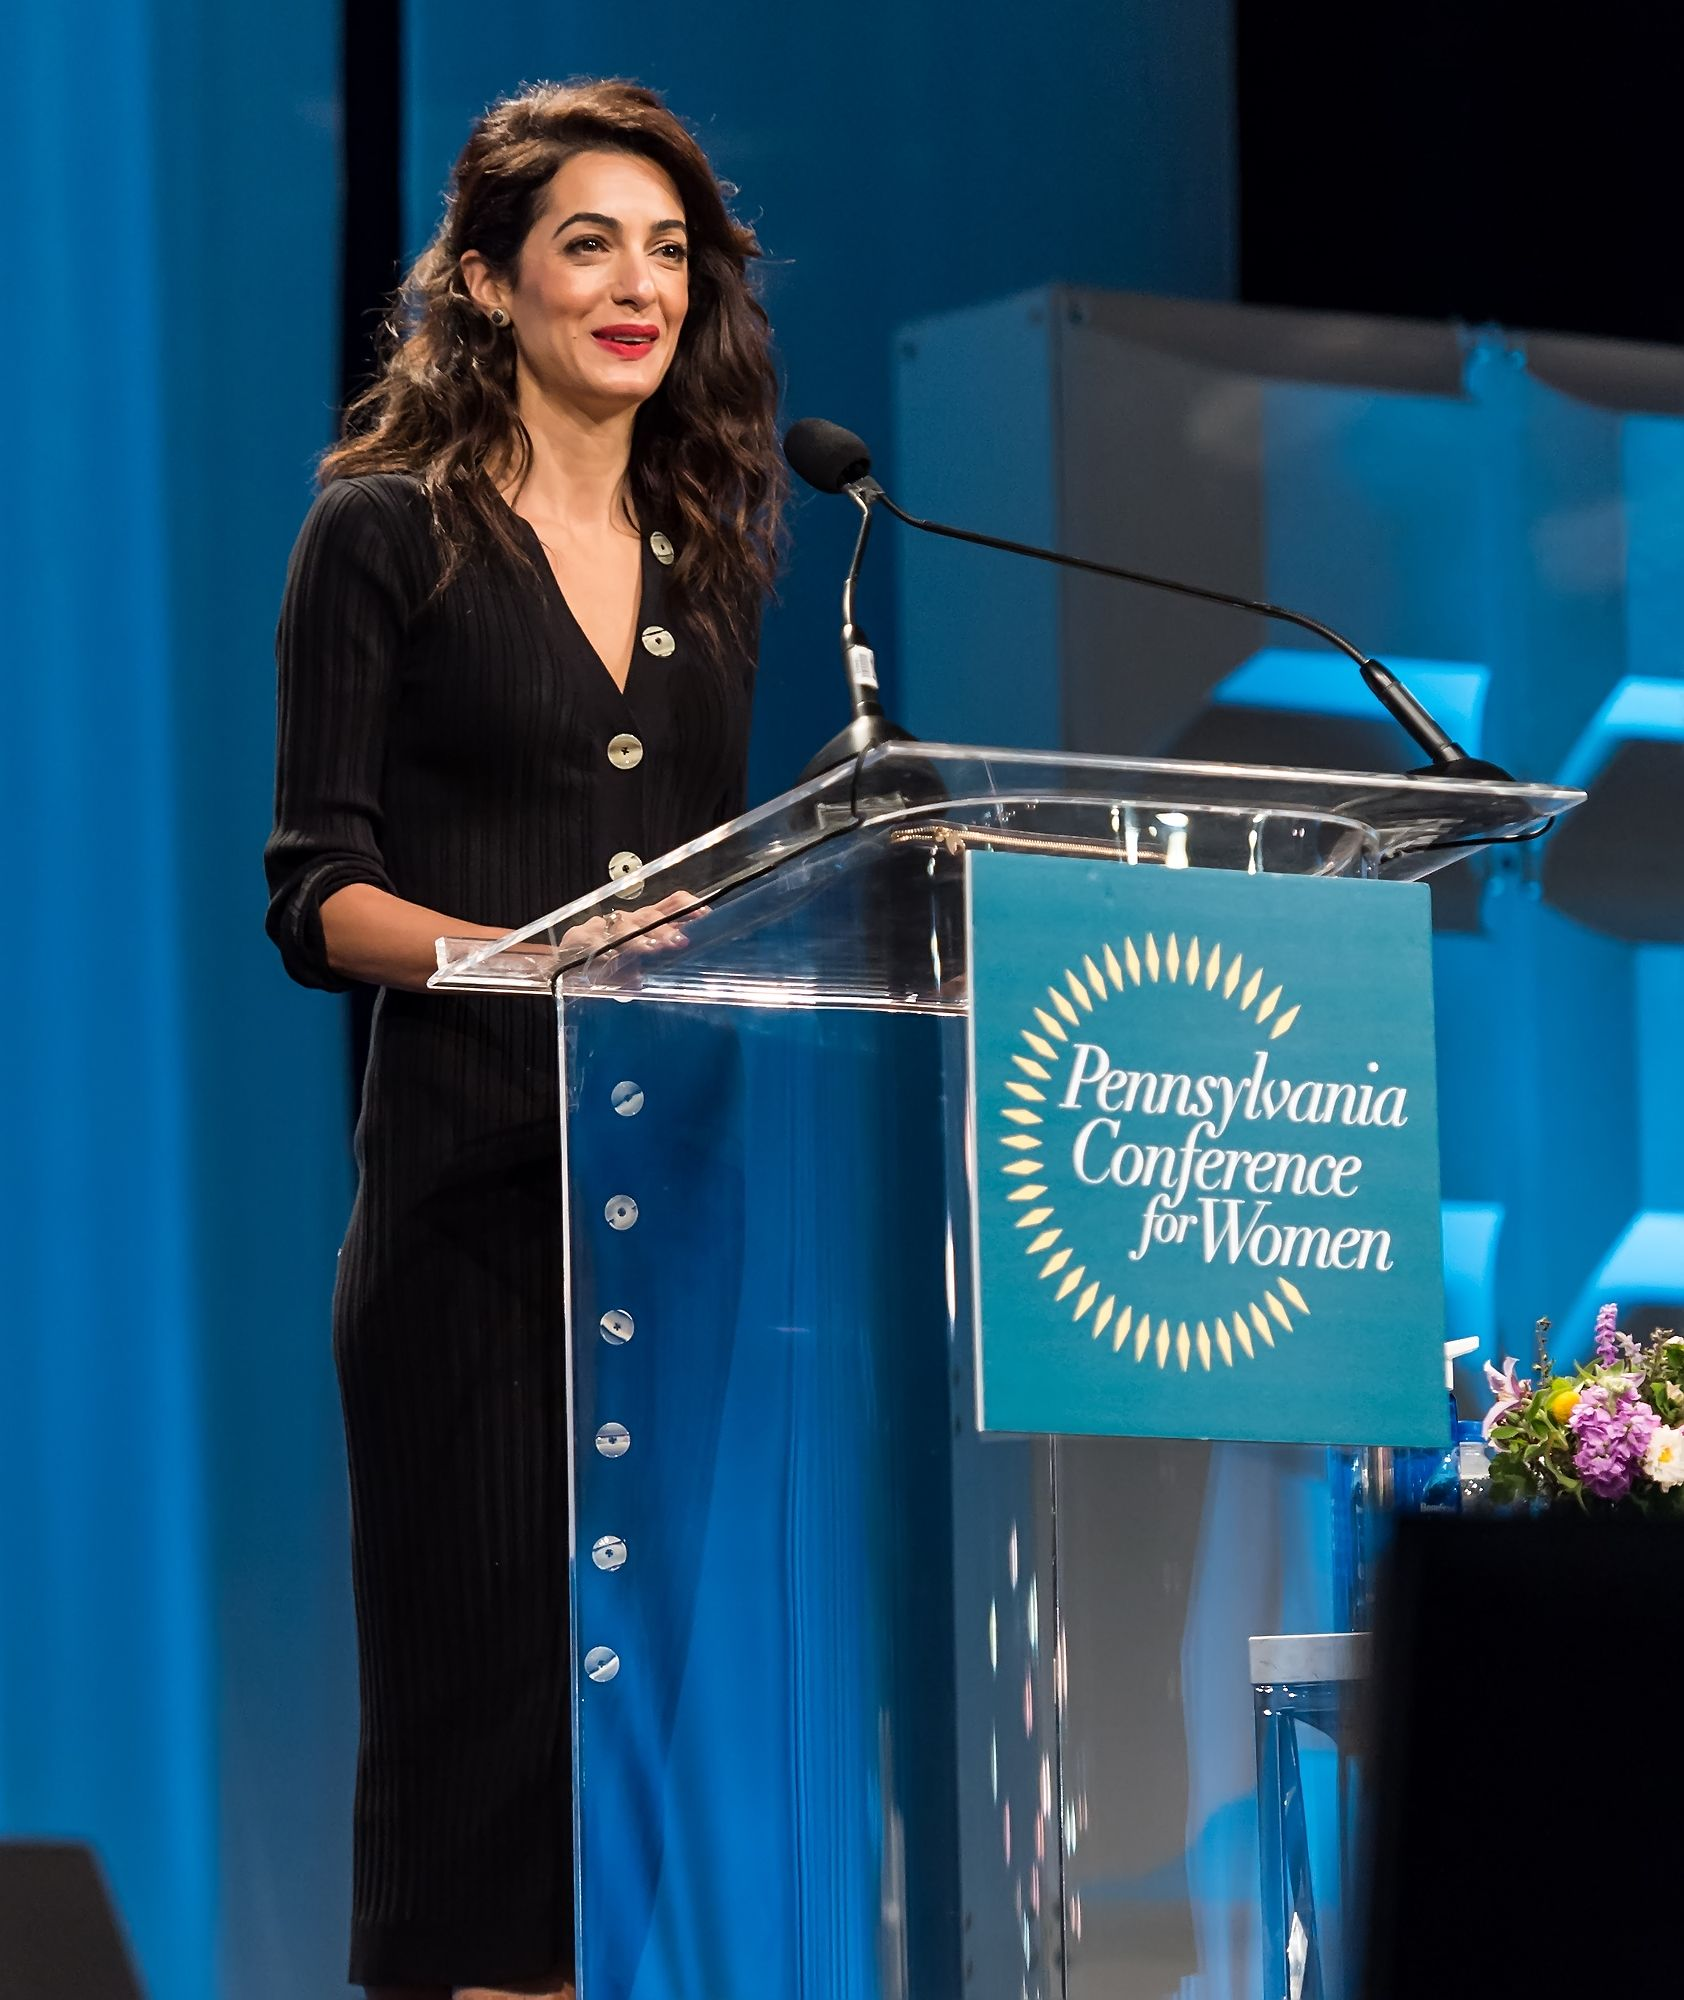 Amal attended the Pennsylvania Conference for Women 2018 wearing a black sweater dress.